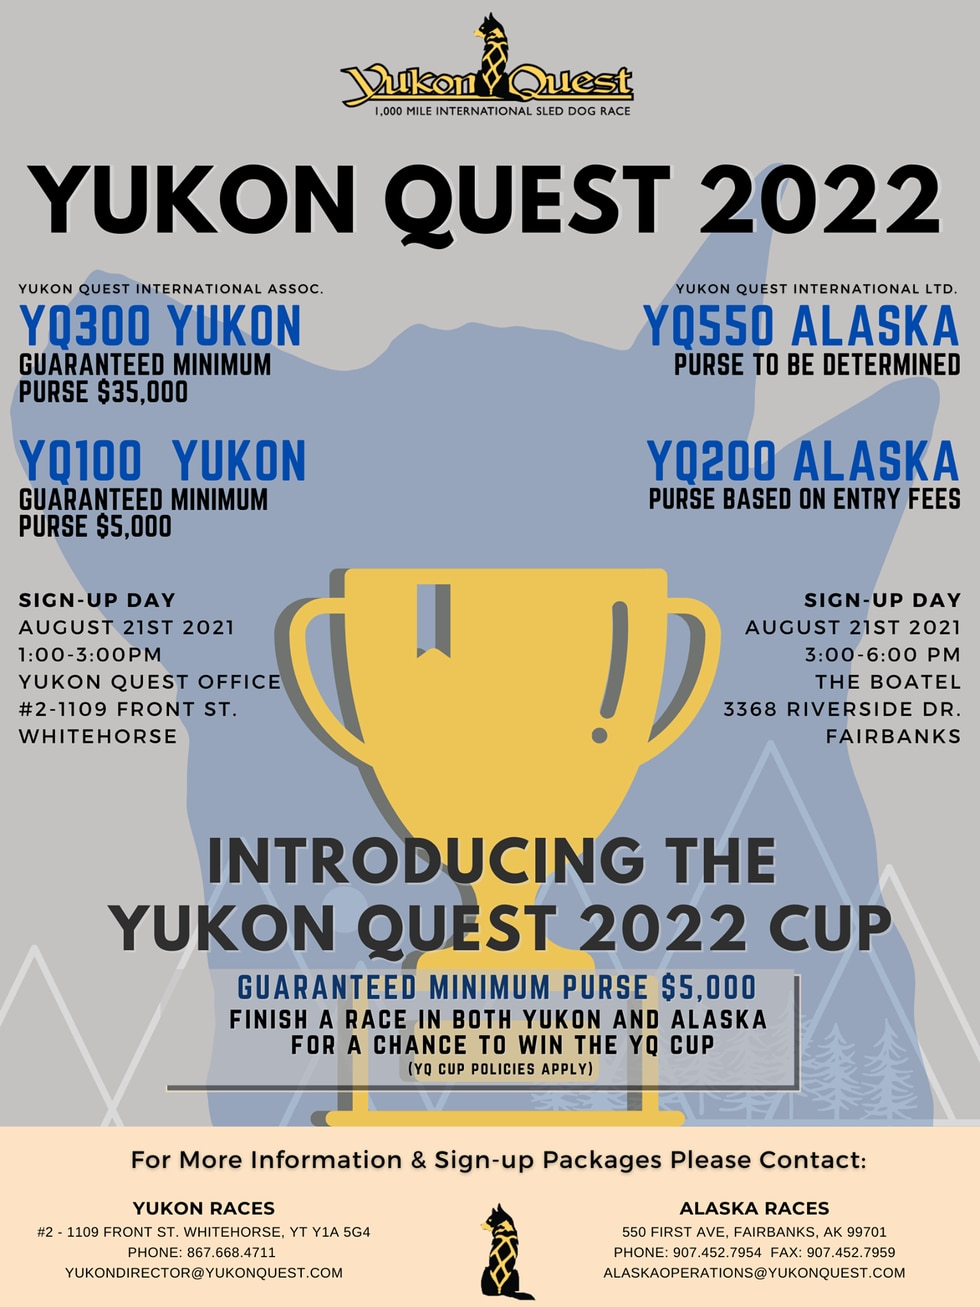 Yukon Quest will host four races this year, two on each side of the Alaska-Canadian border.